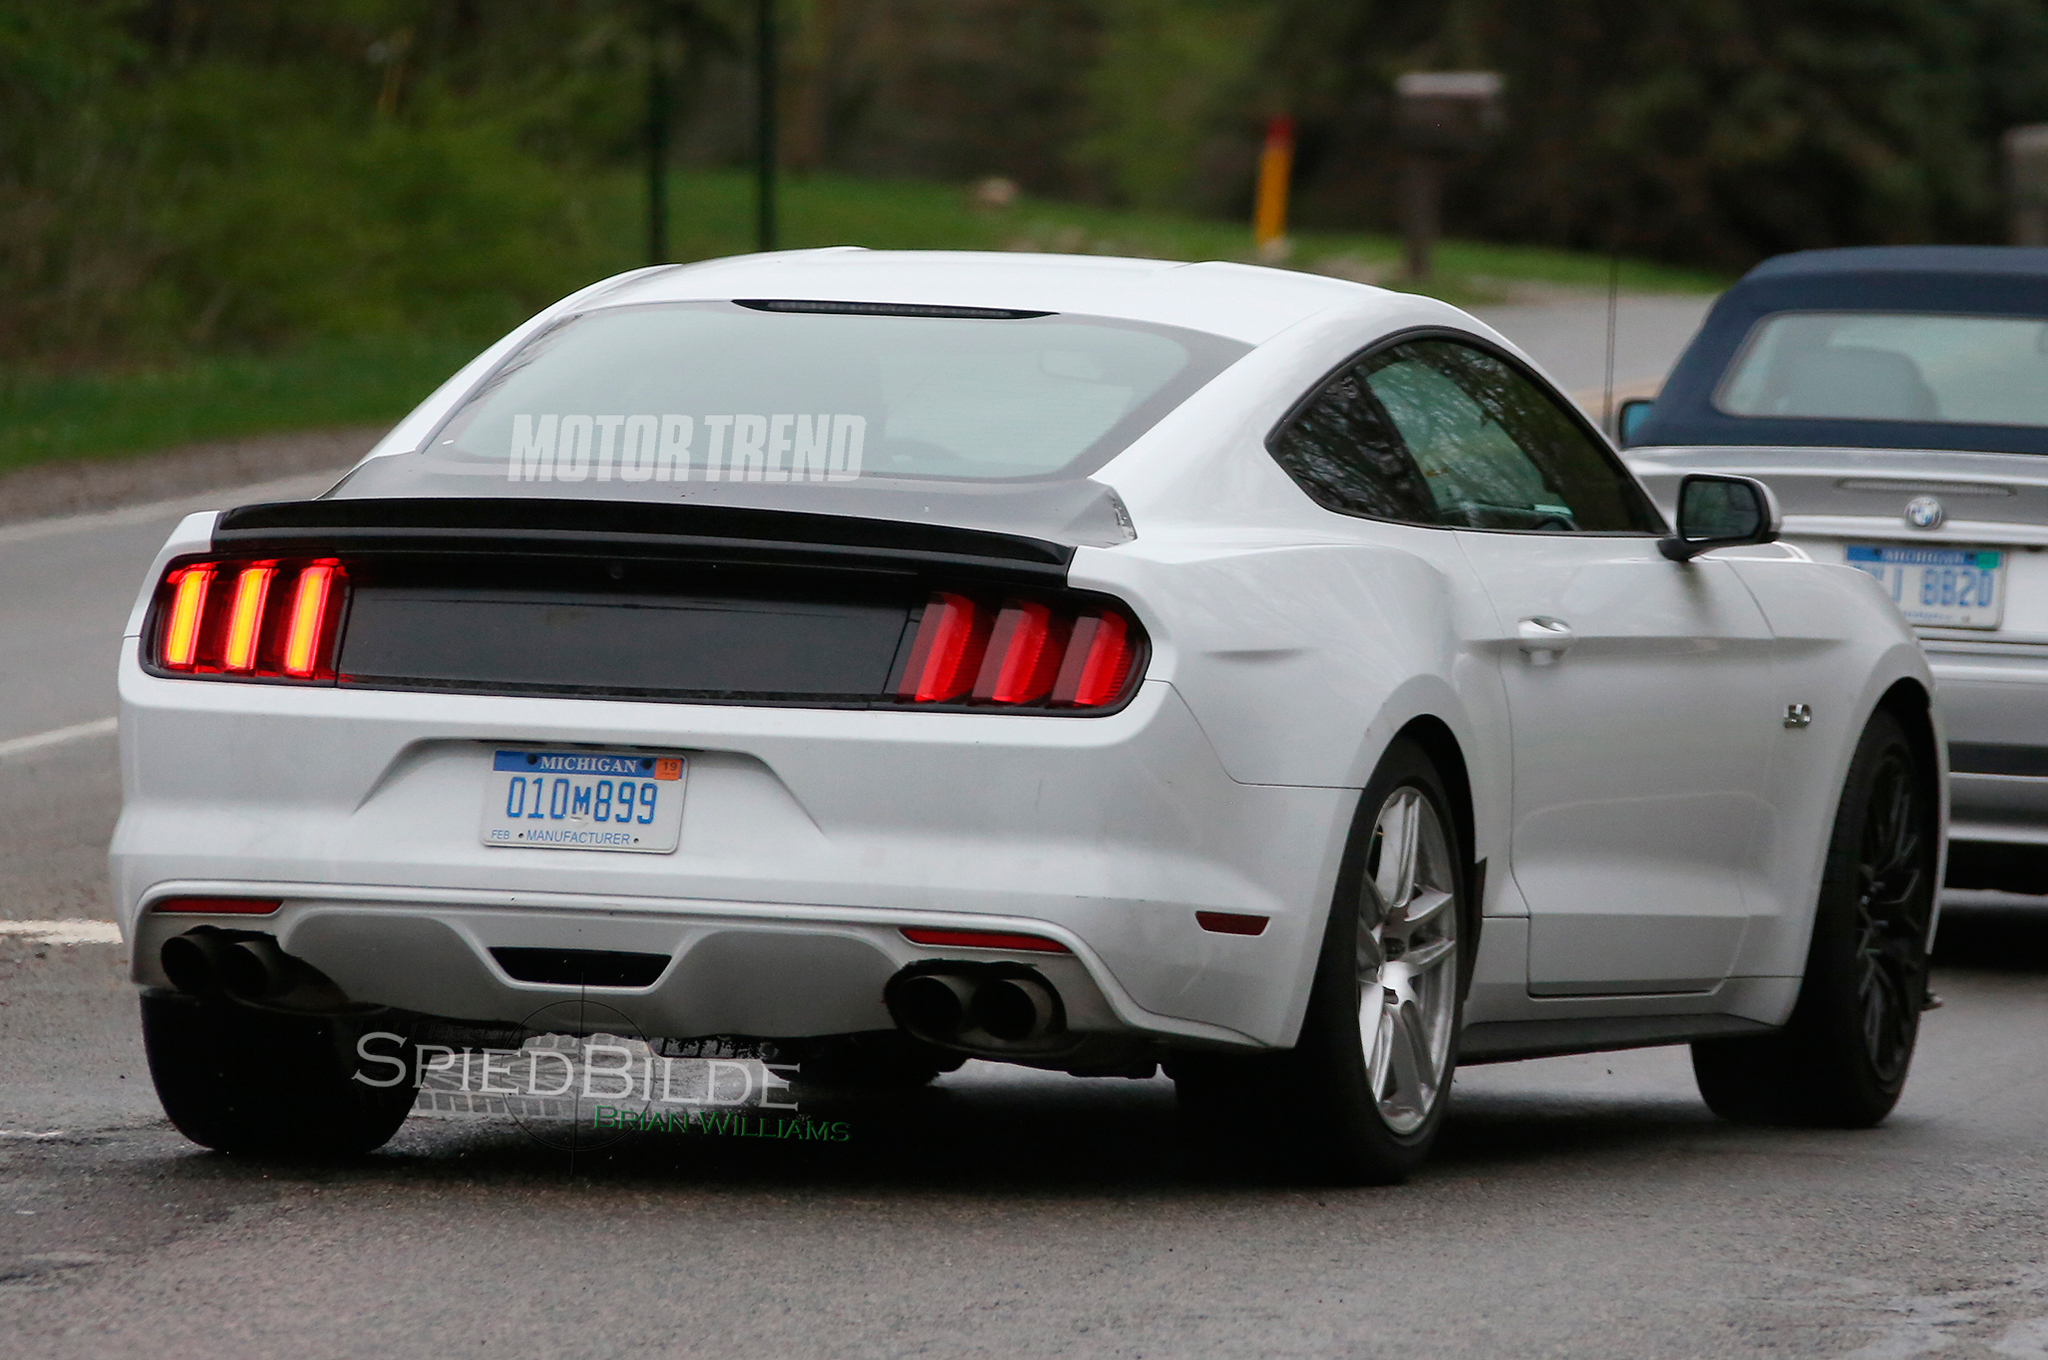 2019 Ford Mustang Racecar Prototype photo - 2